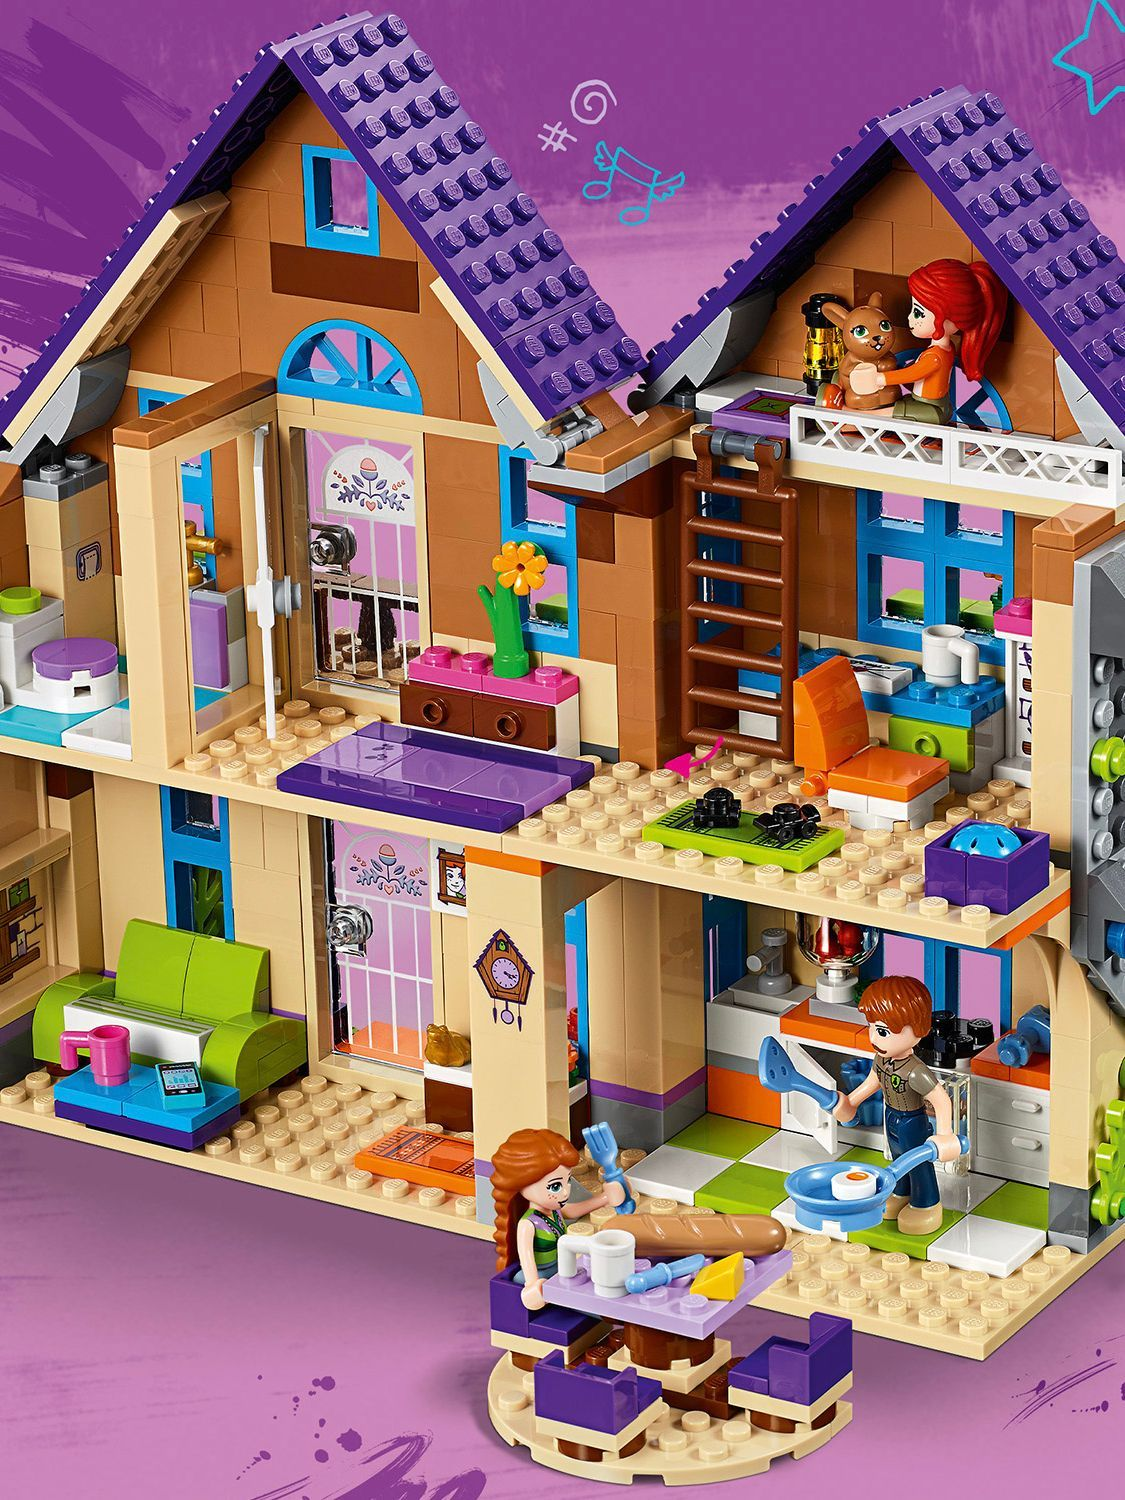 LEGO Friends 41369 Mia's House in 2020 (With images